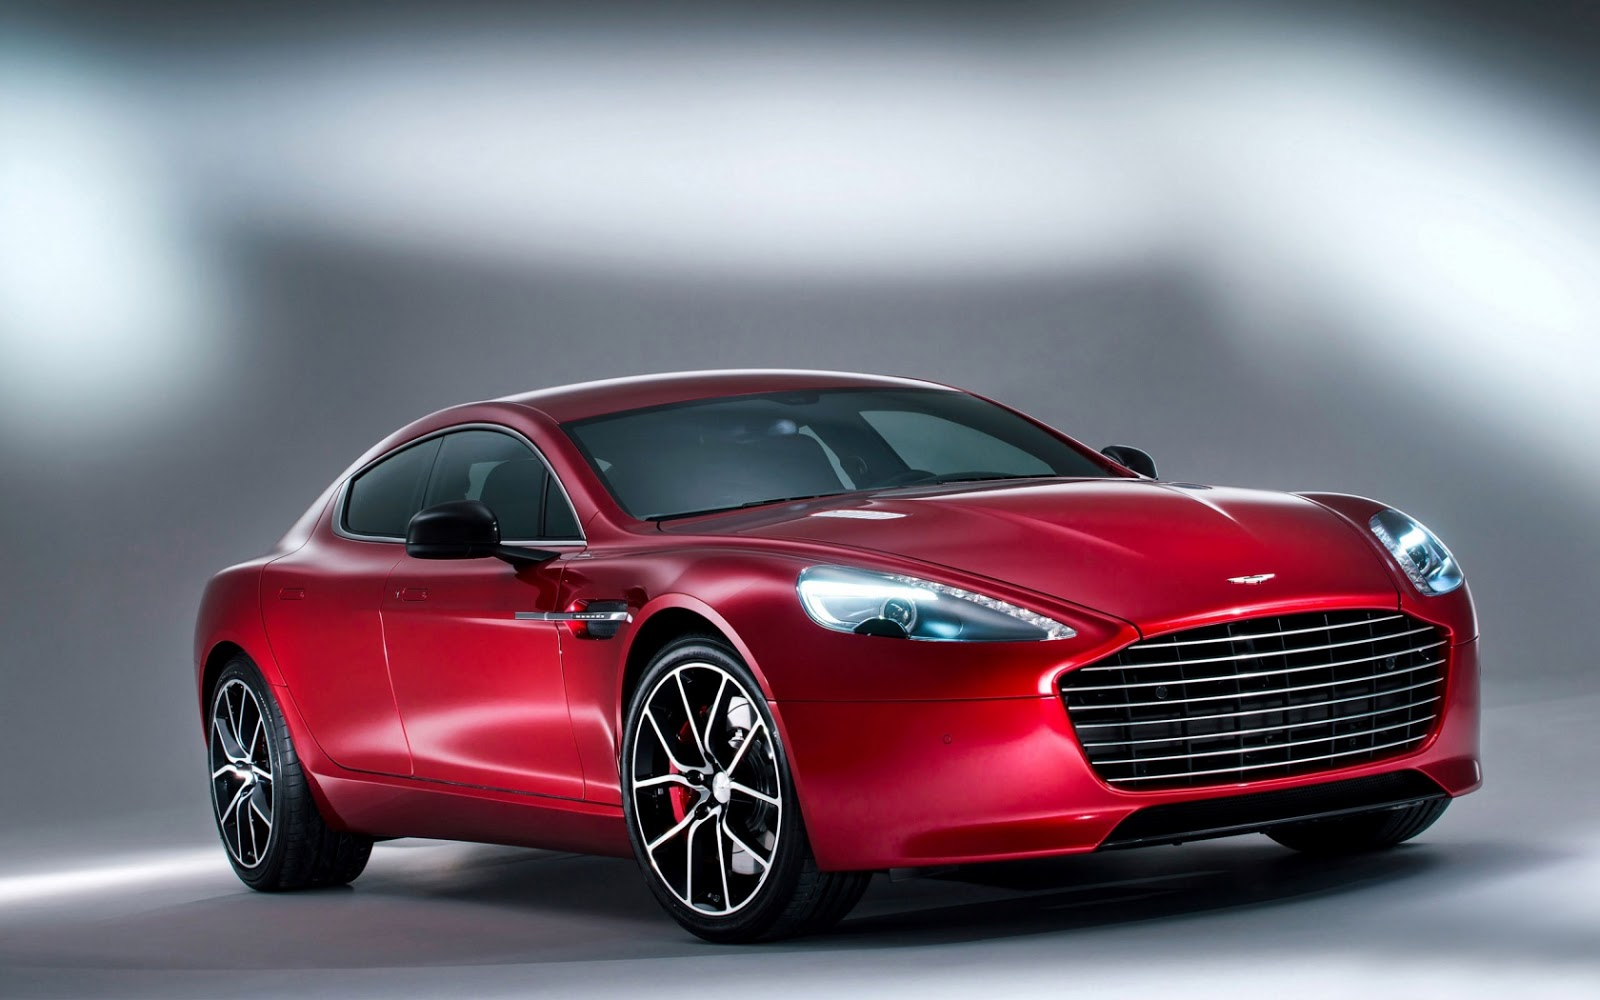 2019 aston martin virage wallpapers - 1990 Aston Martin Virage Volante Images Pictures and